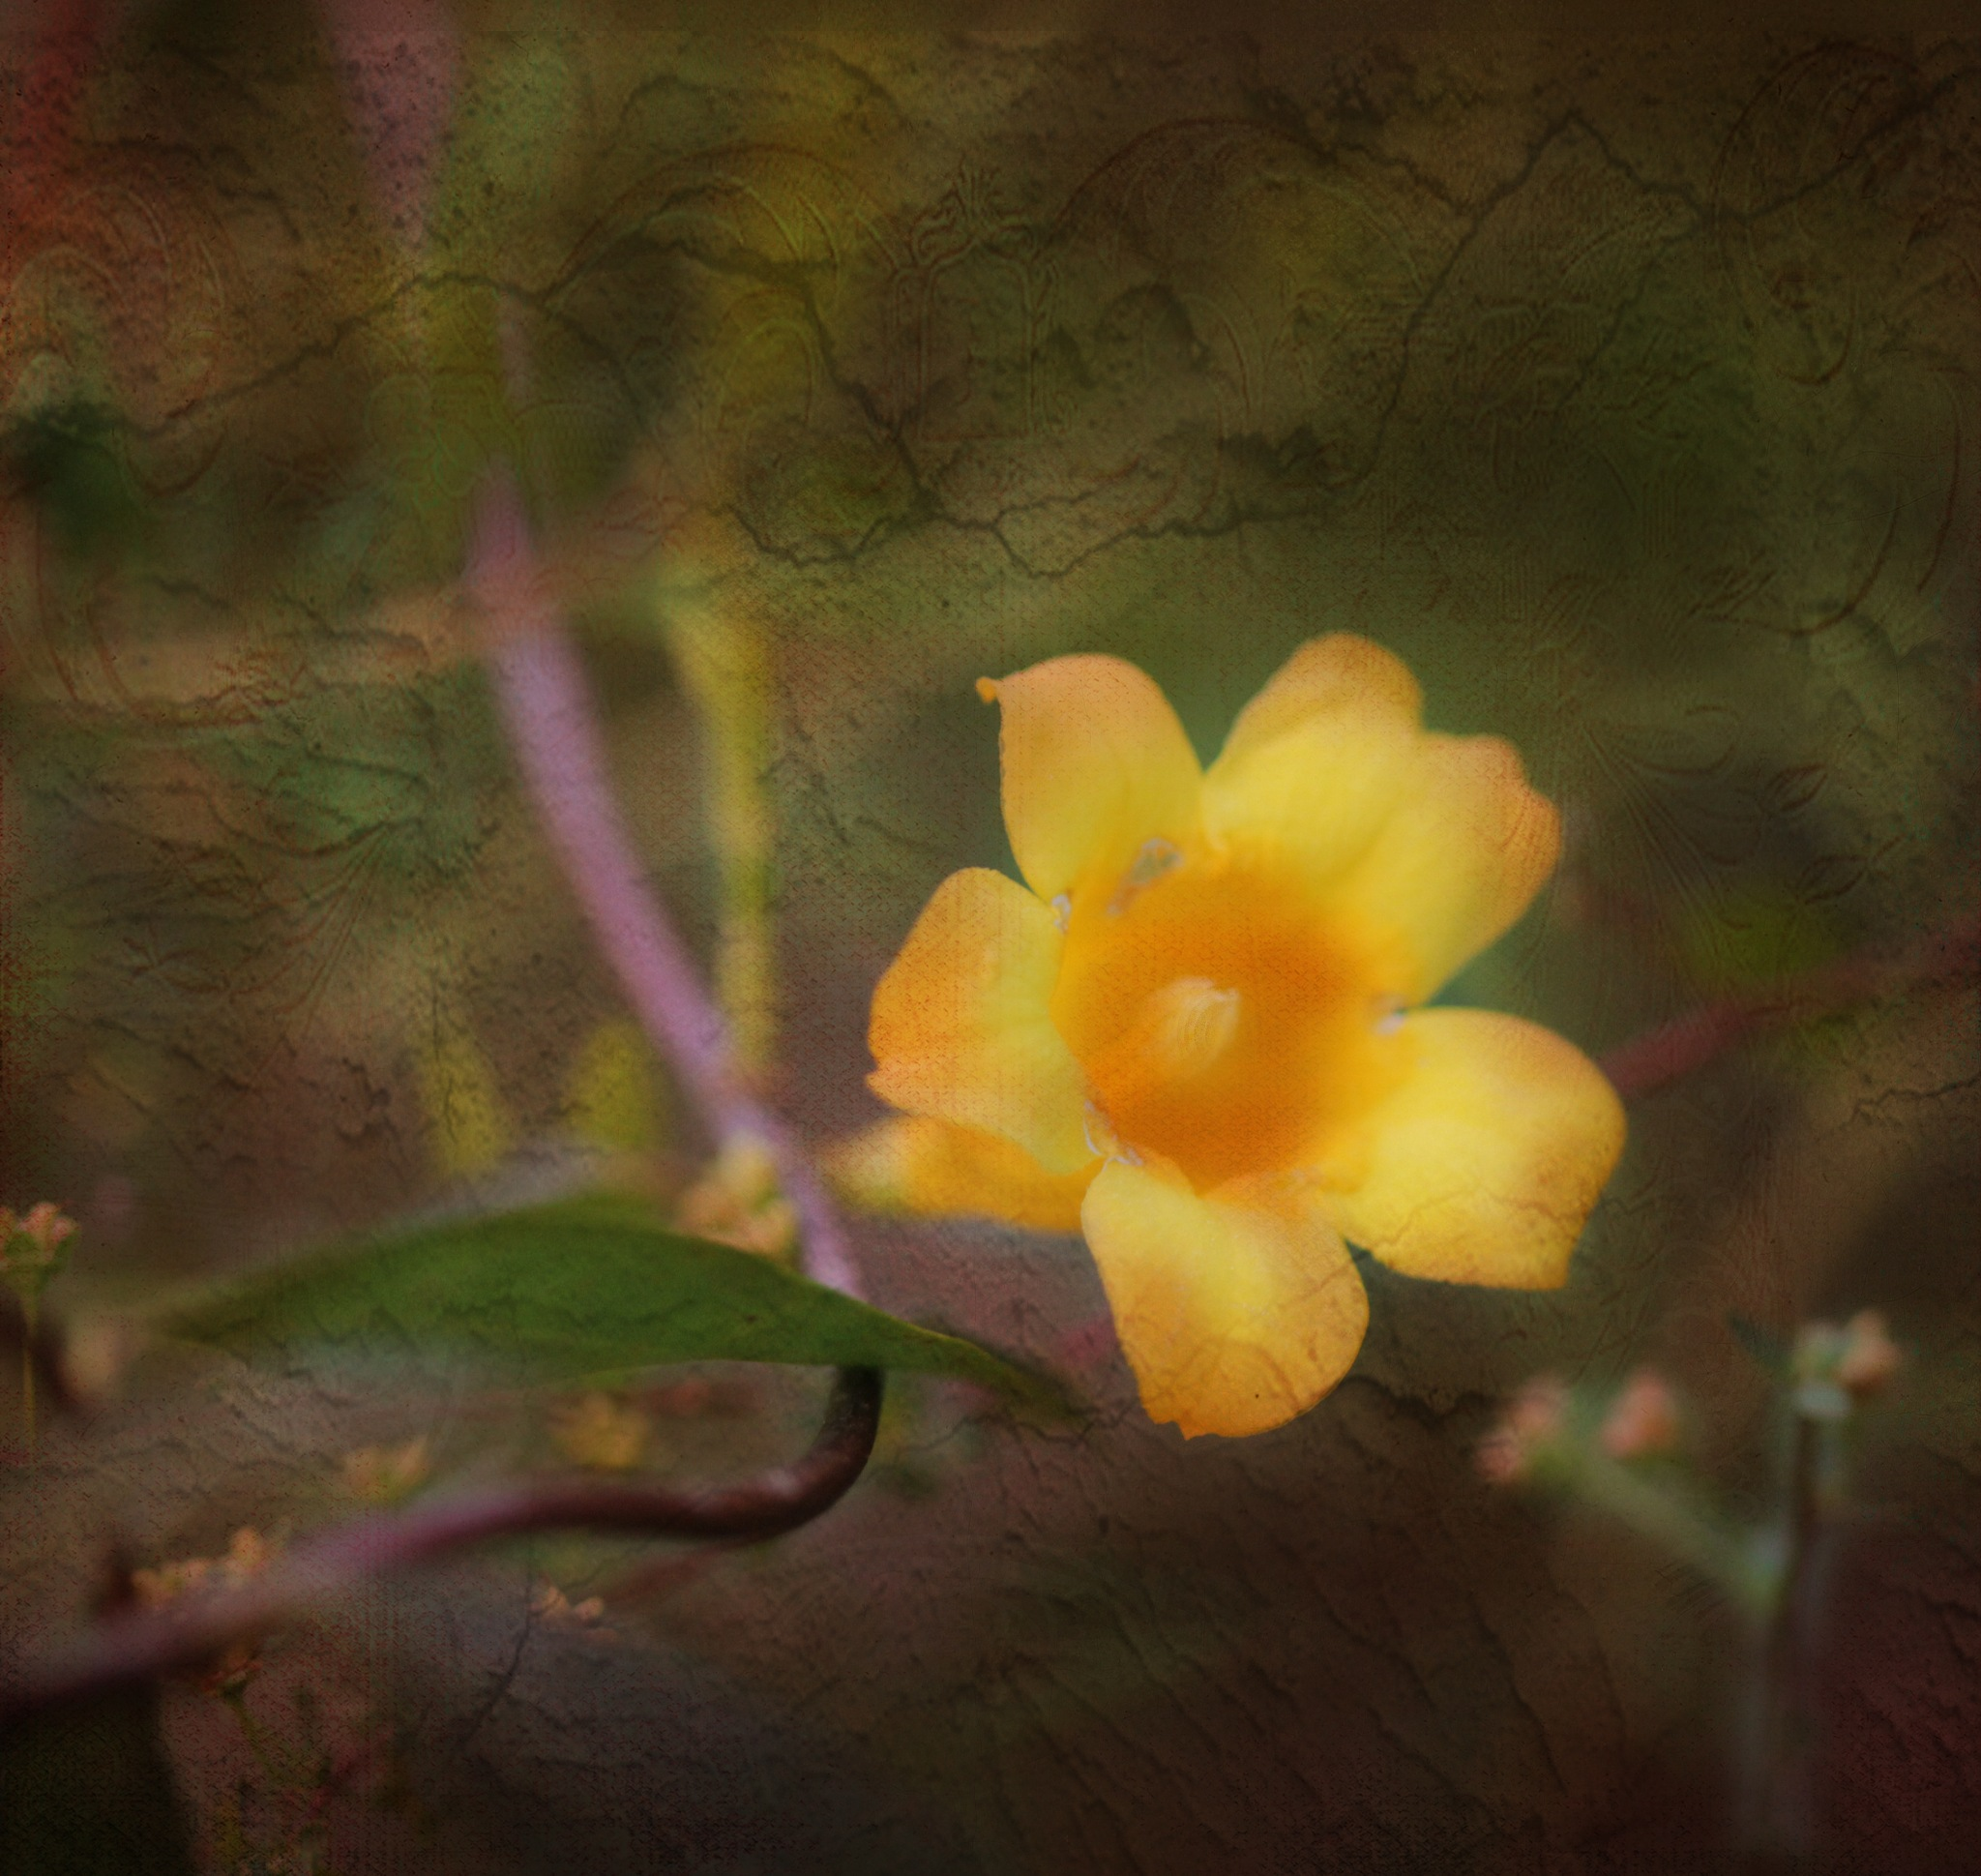 Little Yellow Flower by kstand